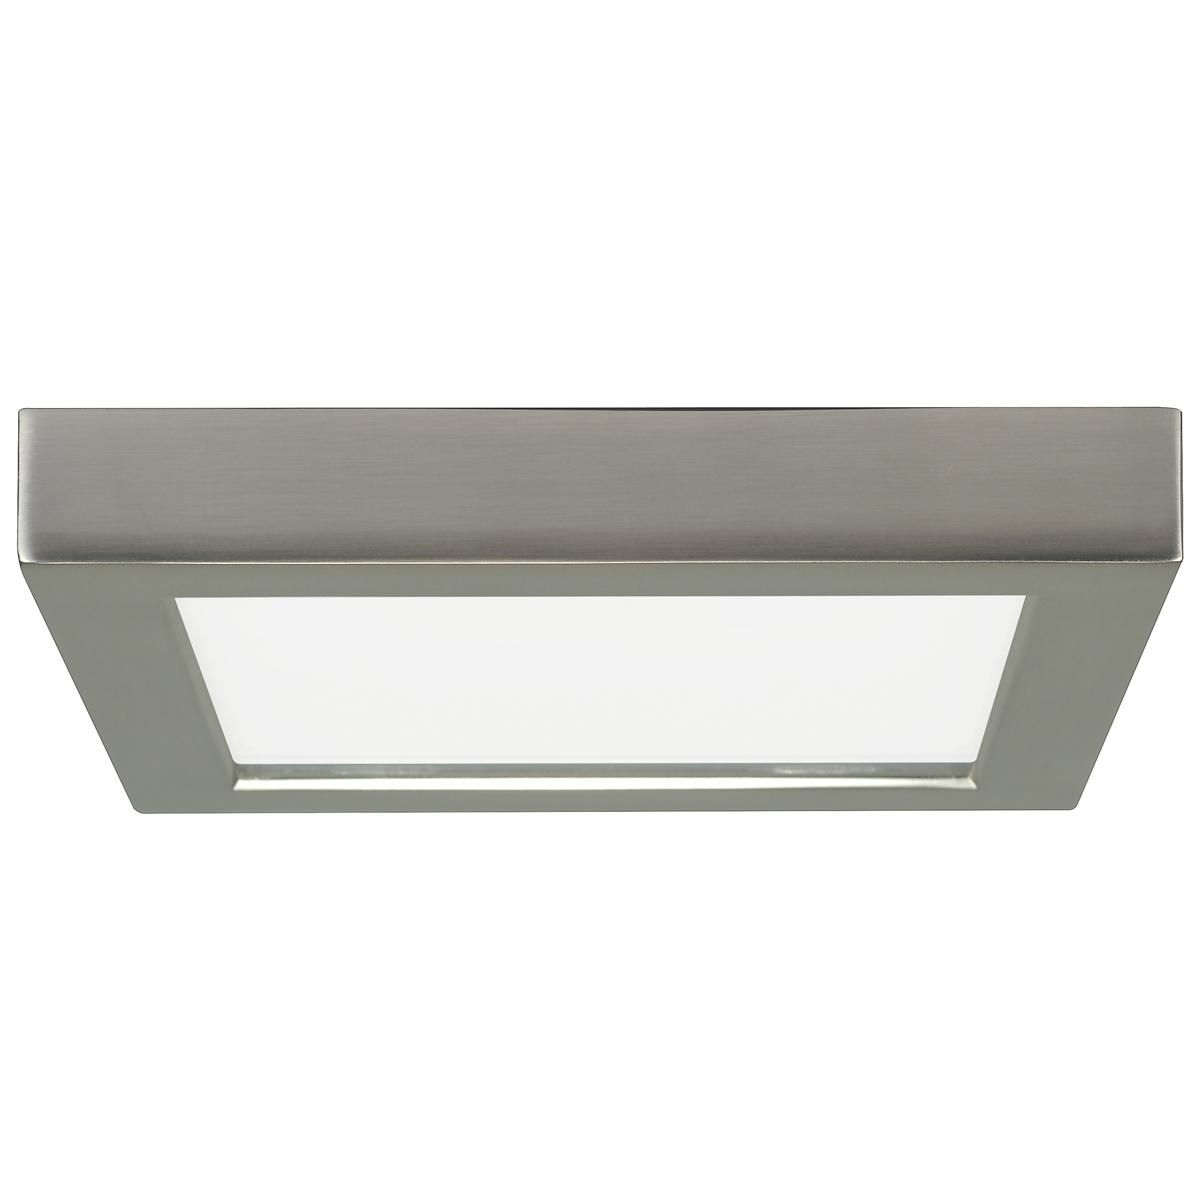 7 Led Simple Square Low Profile Ceiling Light